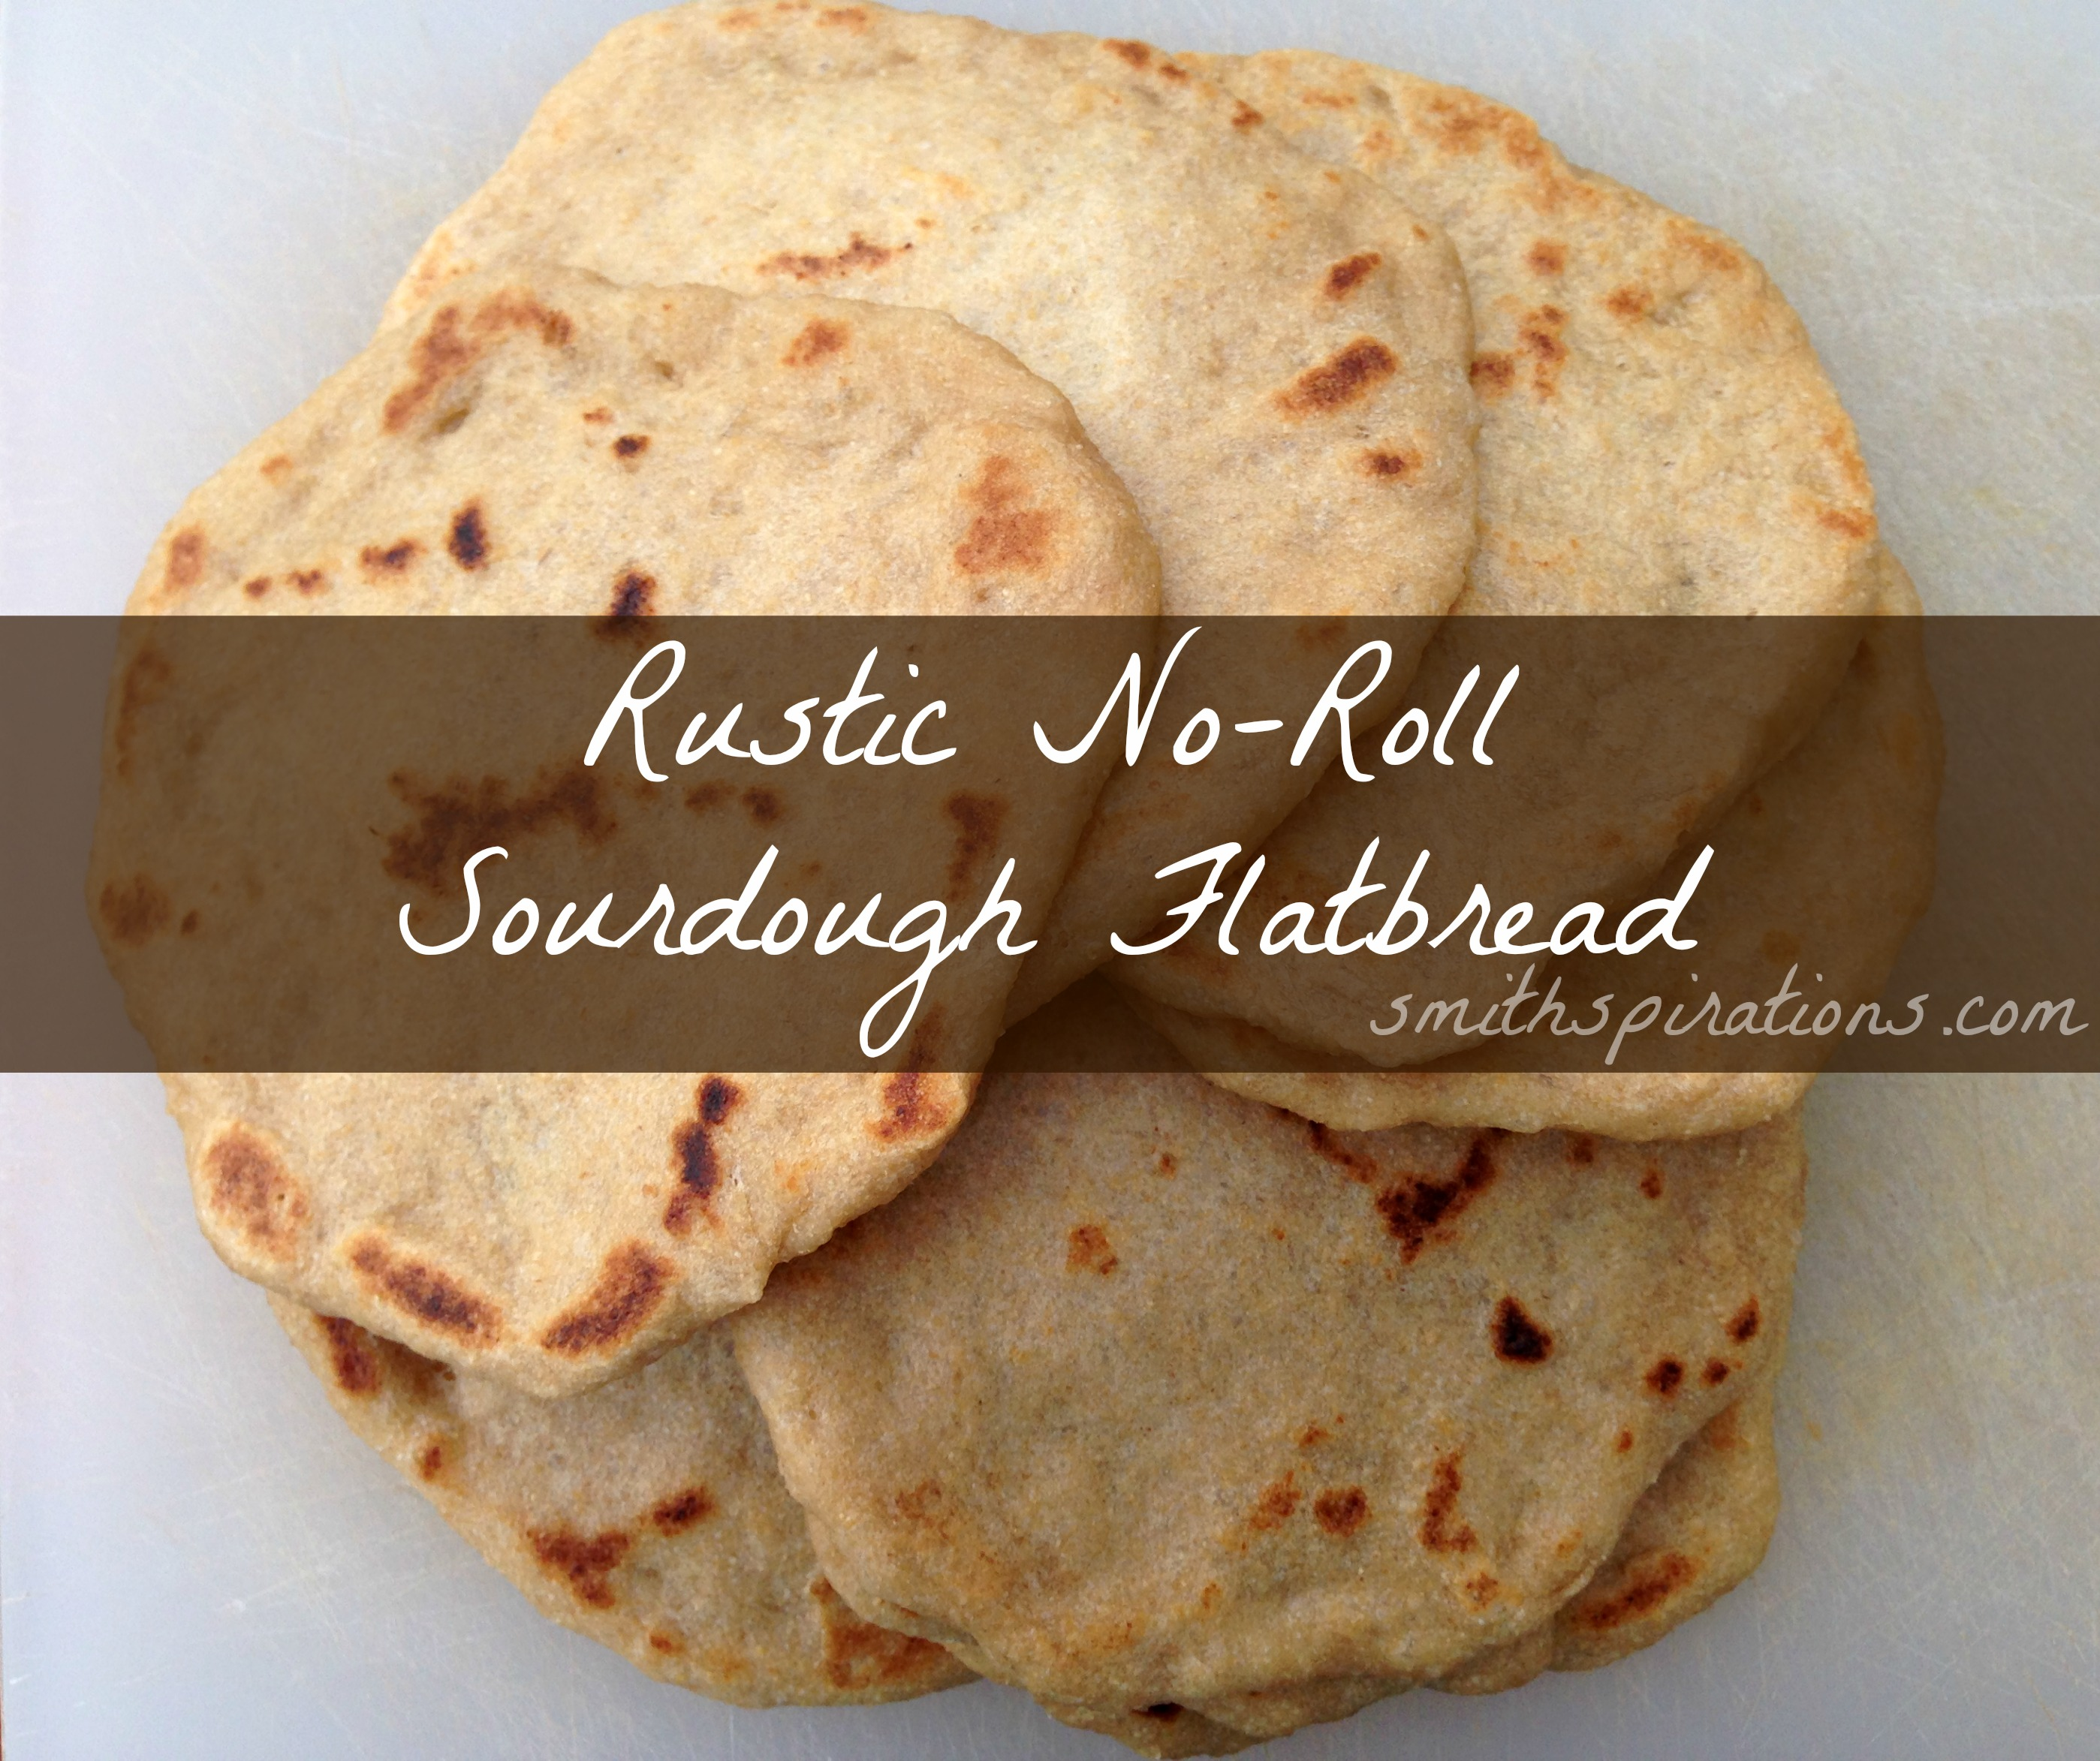 Rustic, No-Roll Sourdough Flatbread